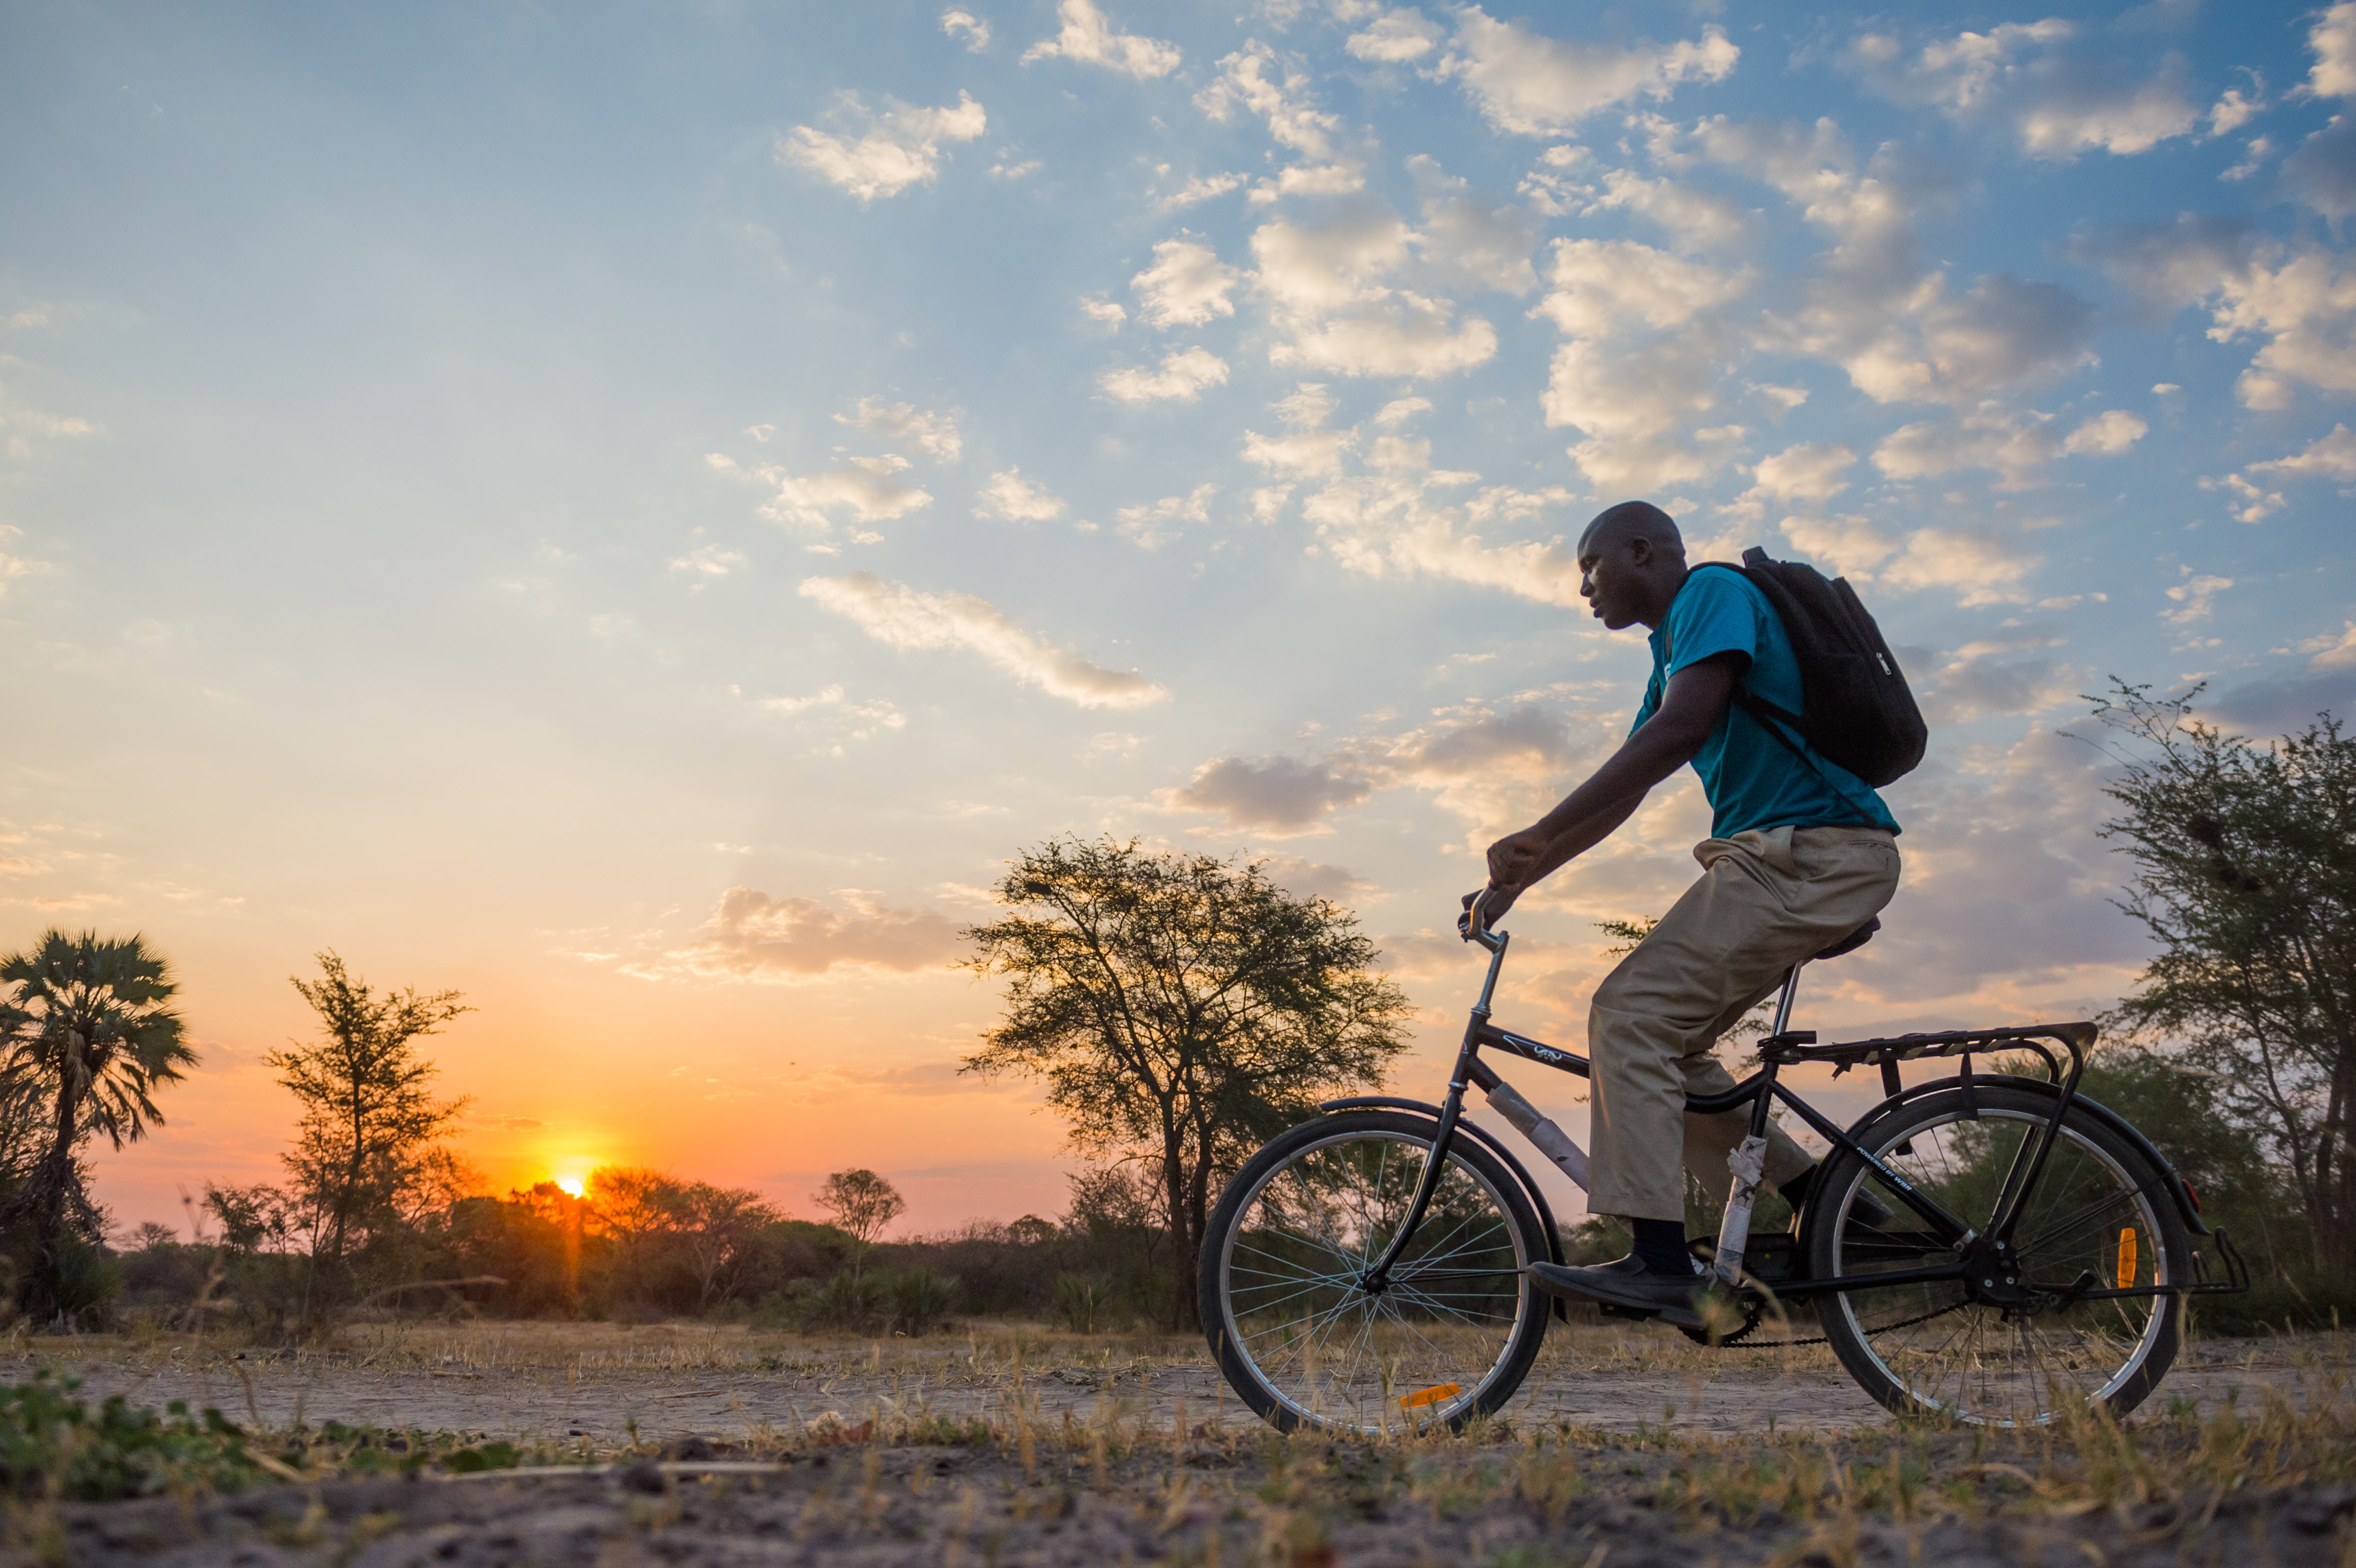 A community health worker rides his bike